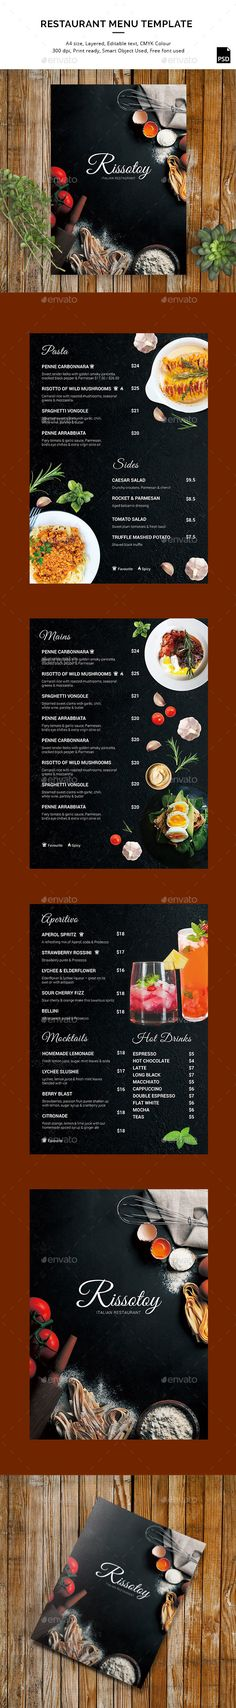 Rissotoy - #Restaurant #Menu in A4 size - #Food Menus Print Templates Download here: https://graphicriver.net/item/rissotoy-restaurant-menu-in-a4-size/20383566?ref=alena994